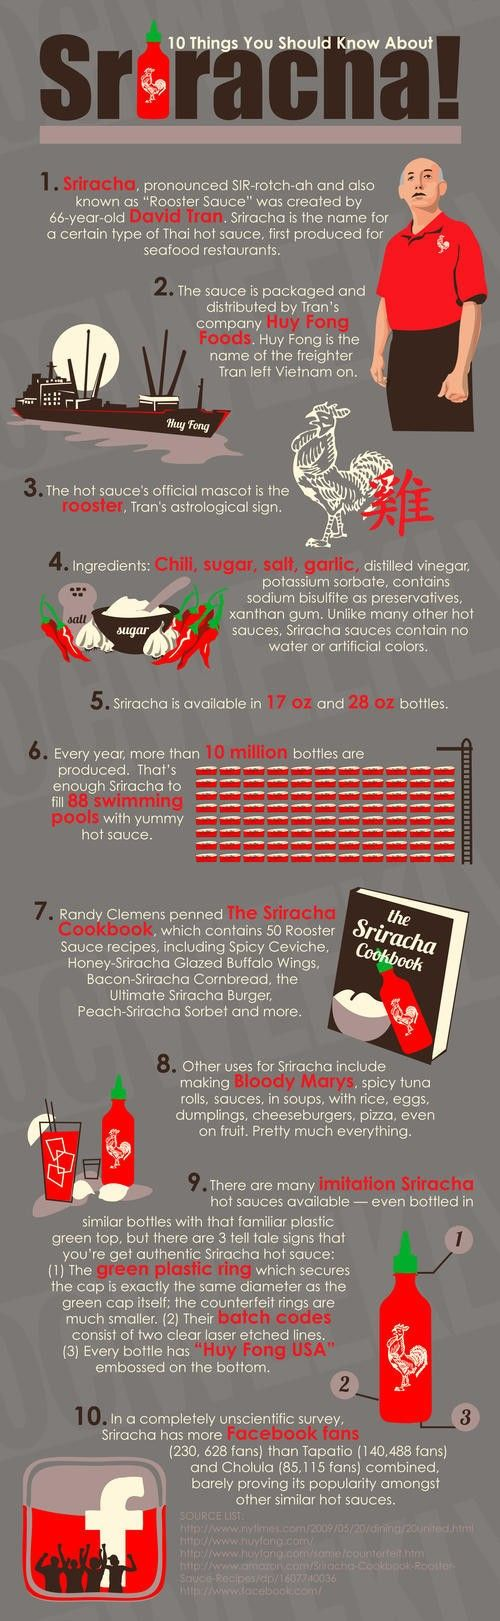 Sriracha by infographicsposters: 'A hot sauce made from special bright red chili peppers which make its flavor extremely addictive, unique and versatile.' #Infographic #Sriracha